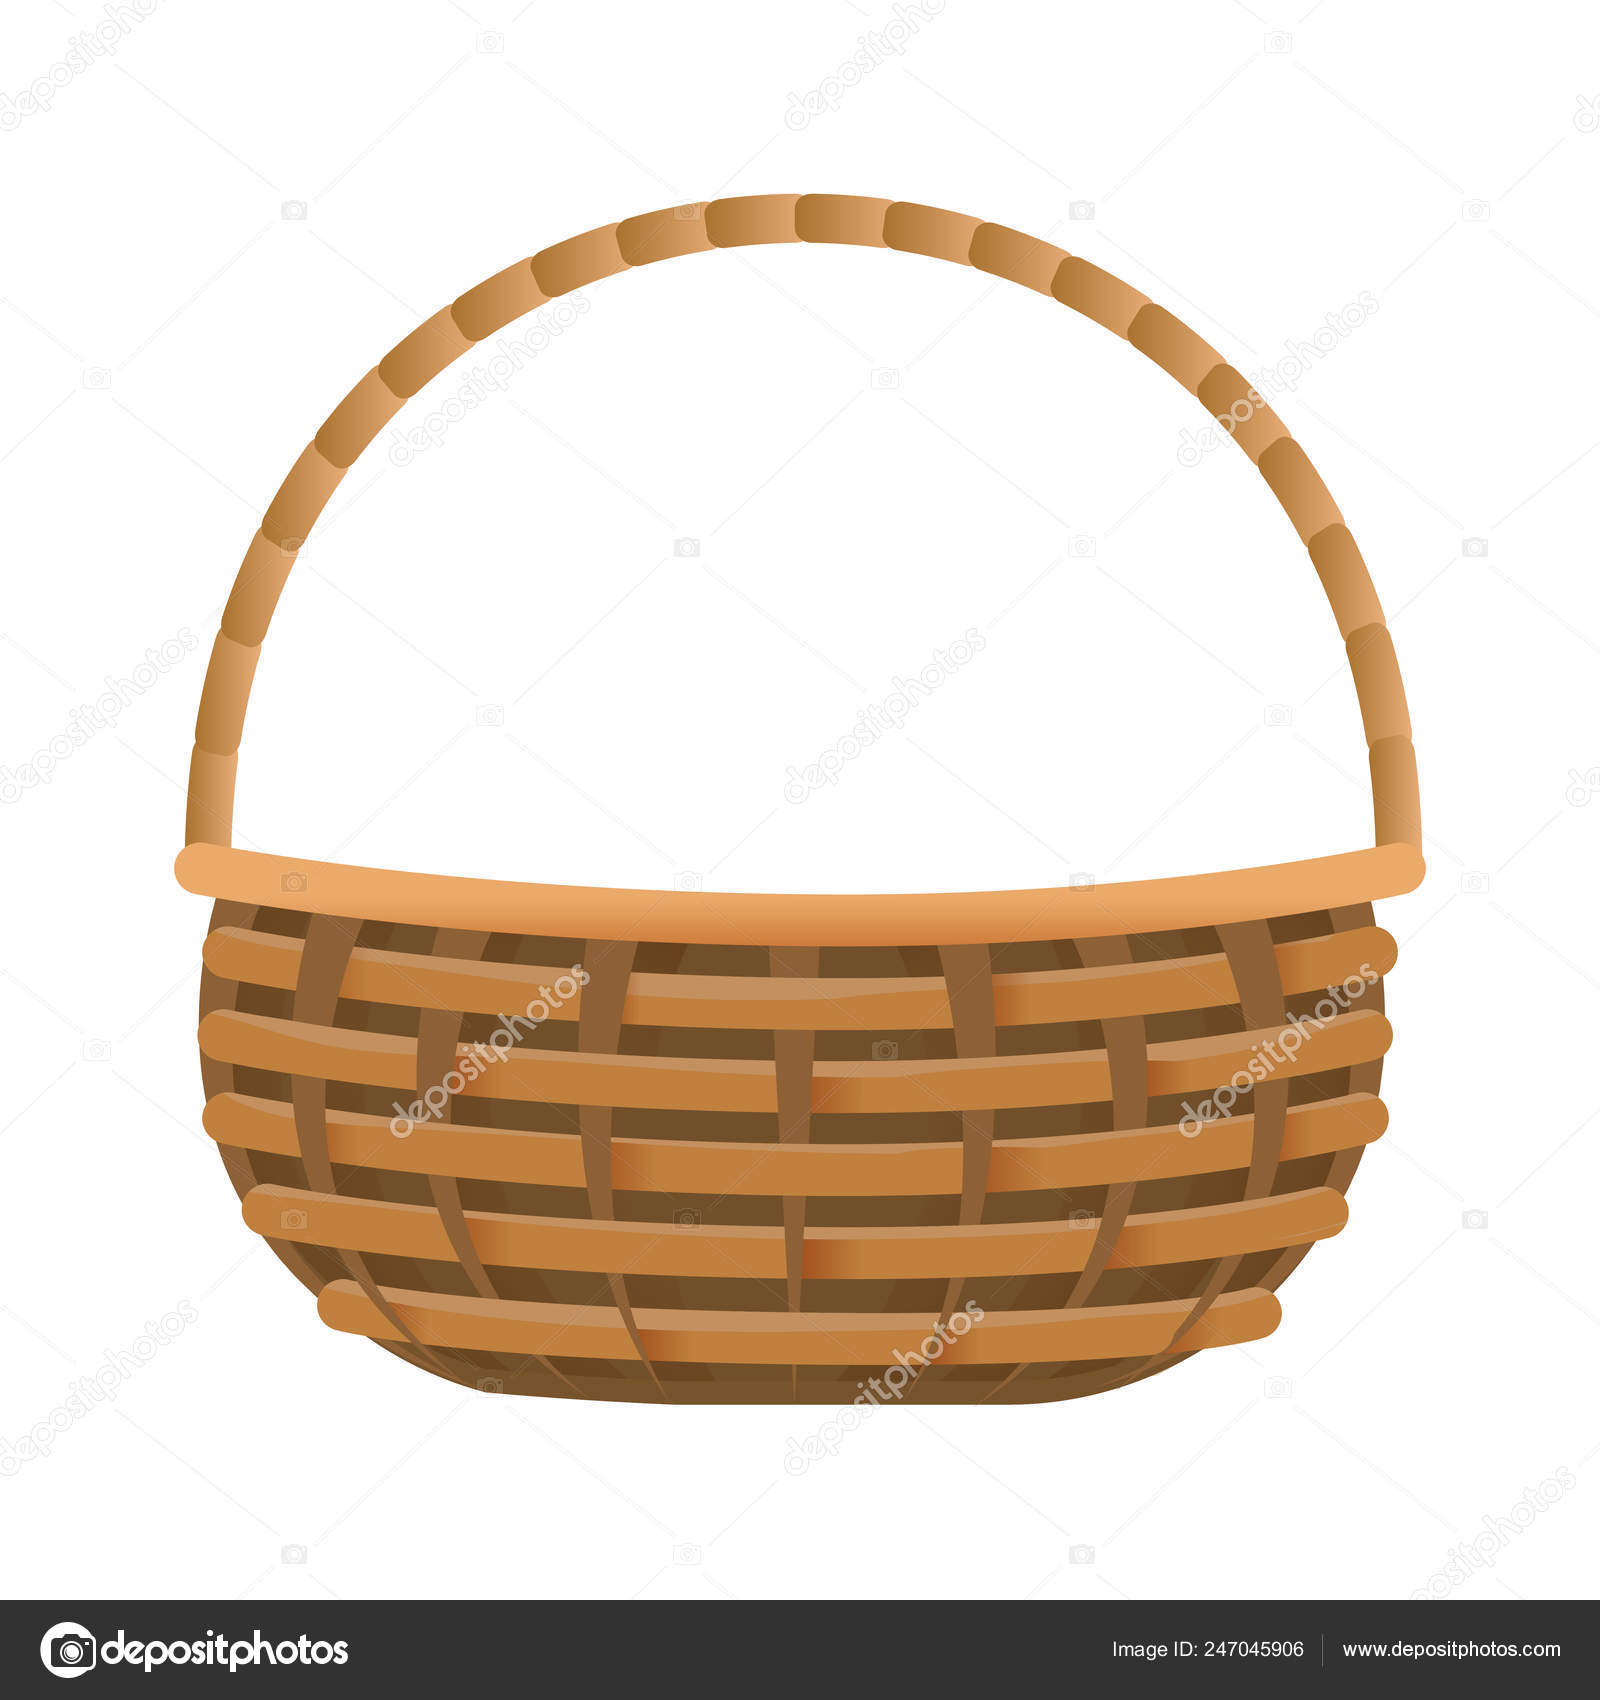 Picnic Basket Cartoon Vector Image By C Stockgiu Vector Stock 247045906